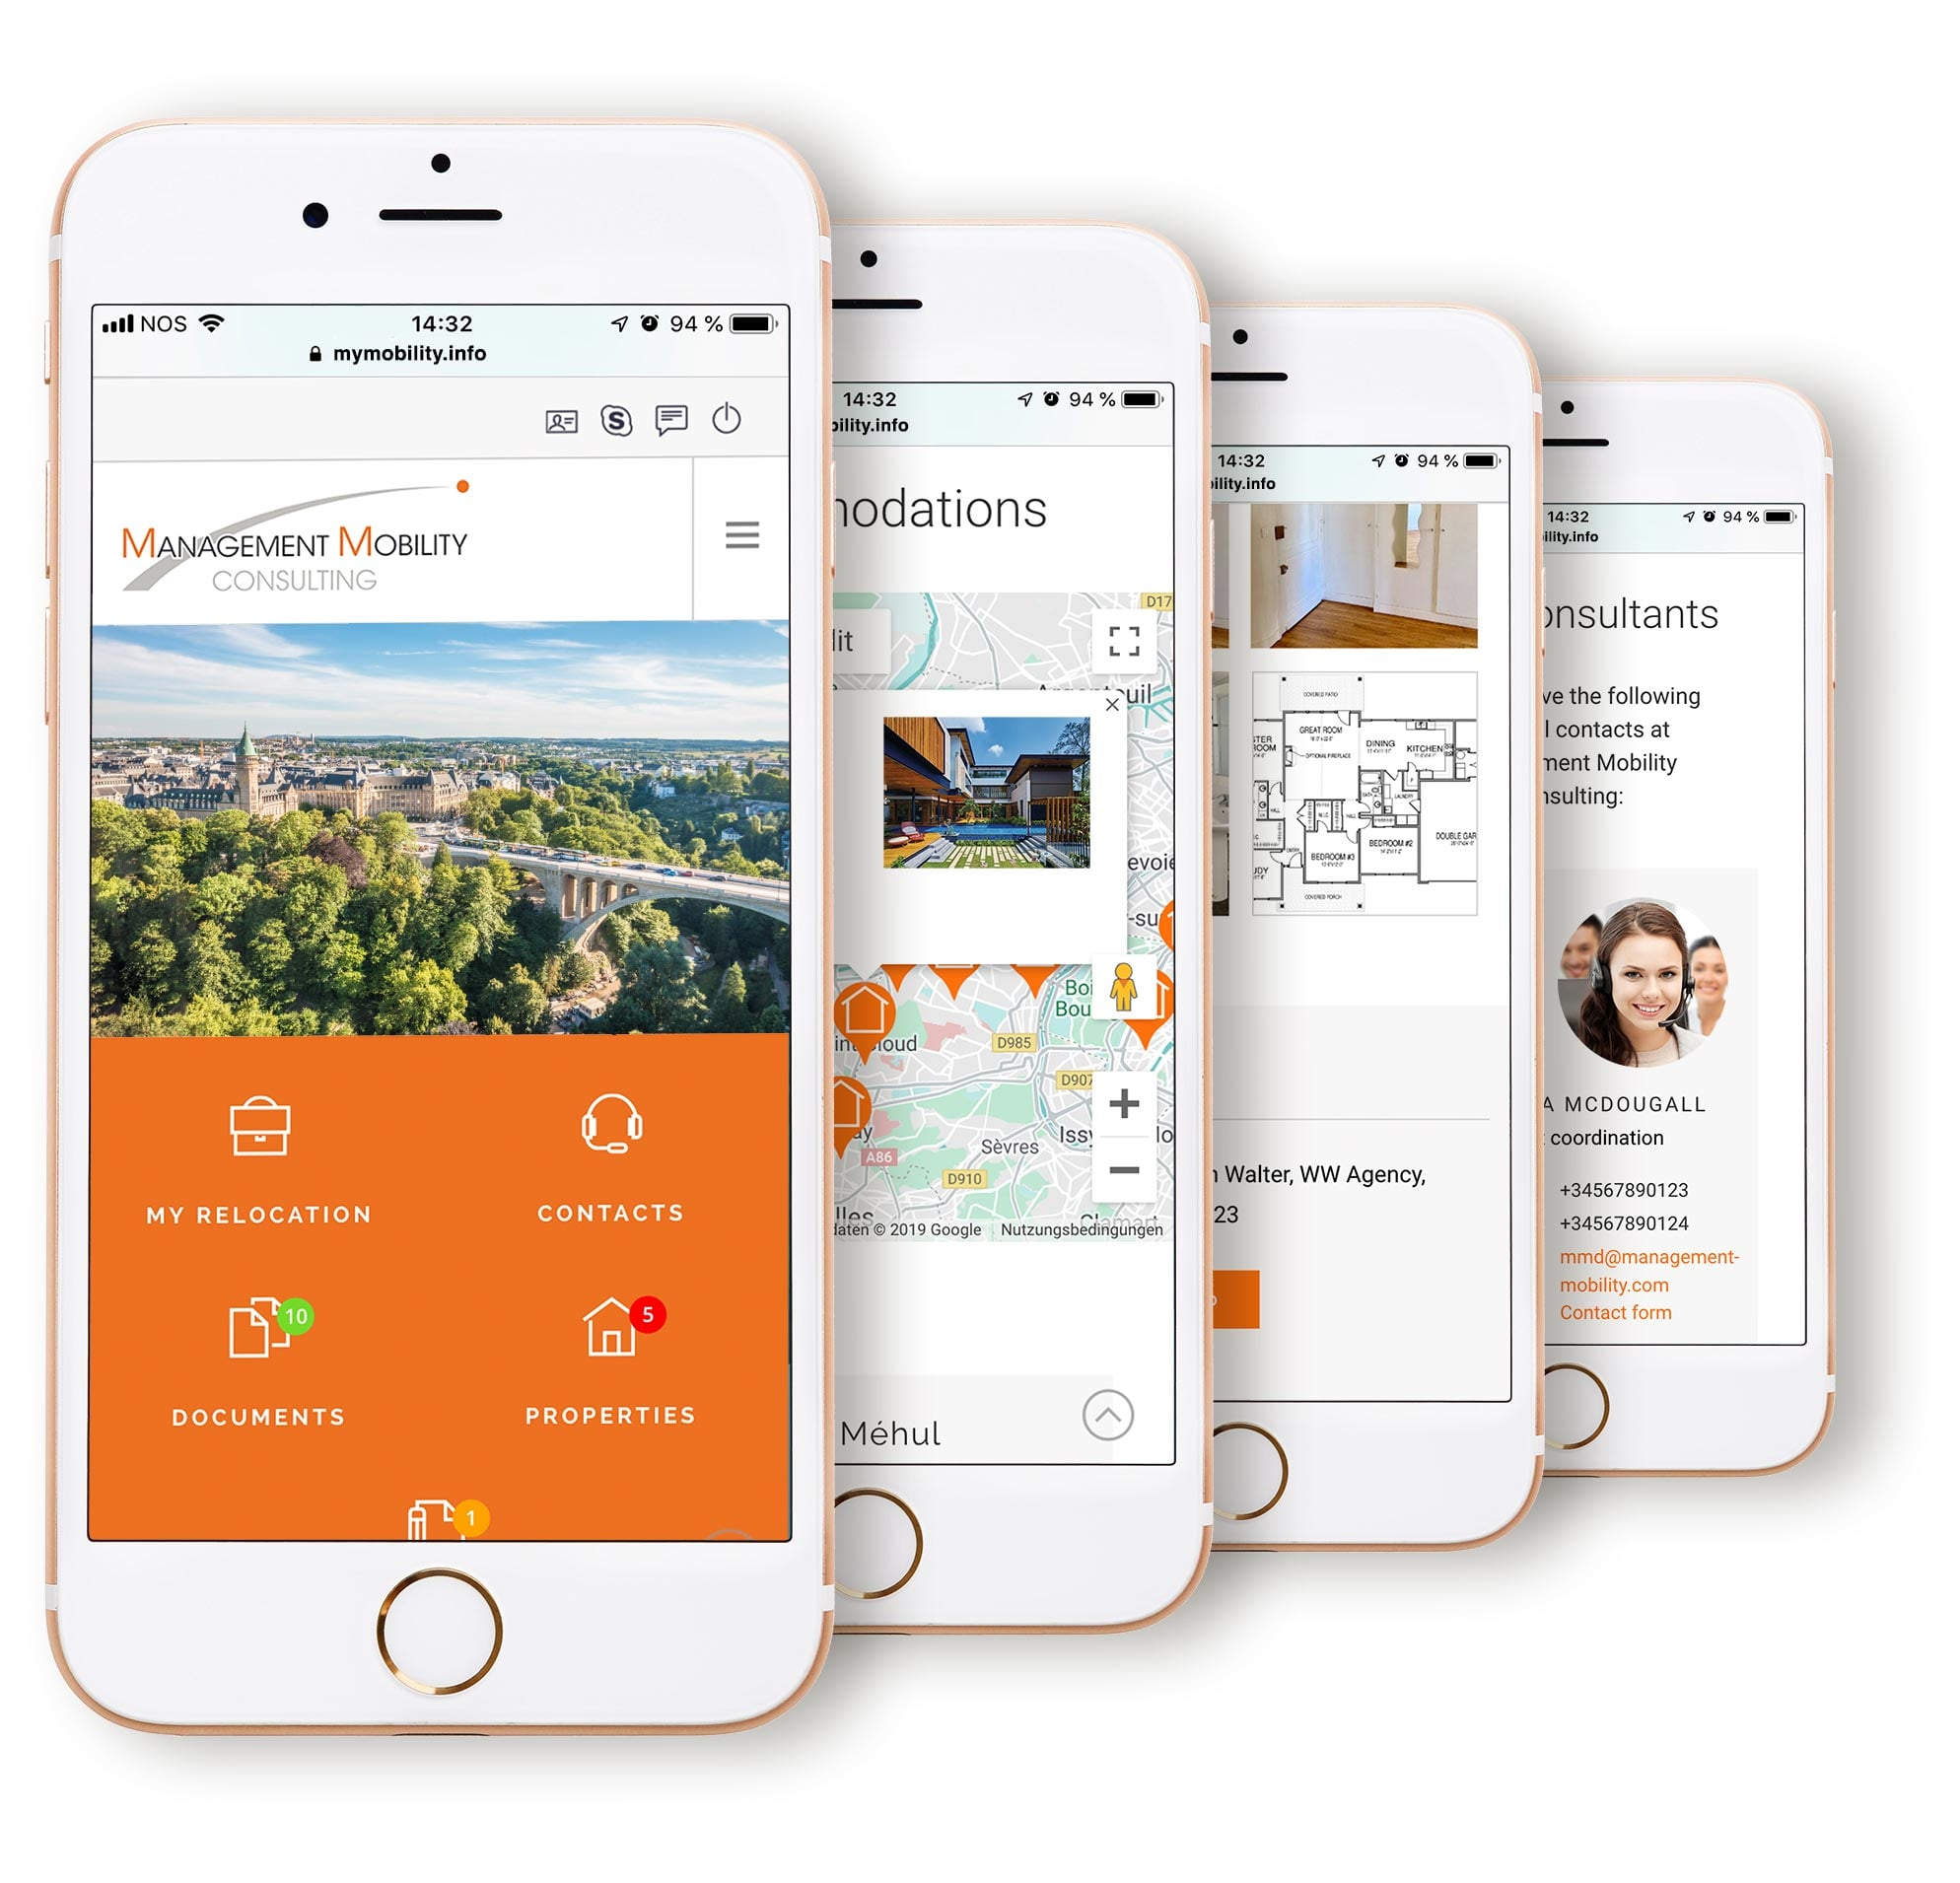 MyMobility on iPhone screens